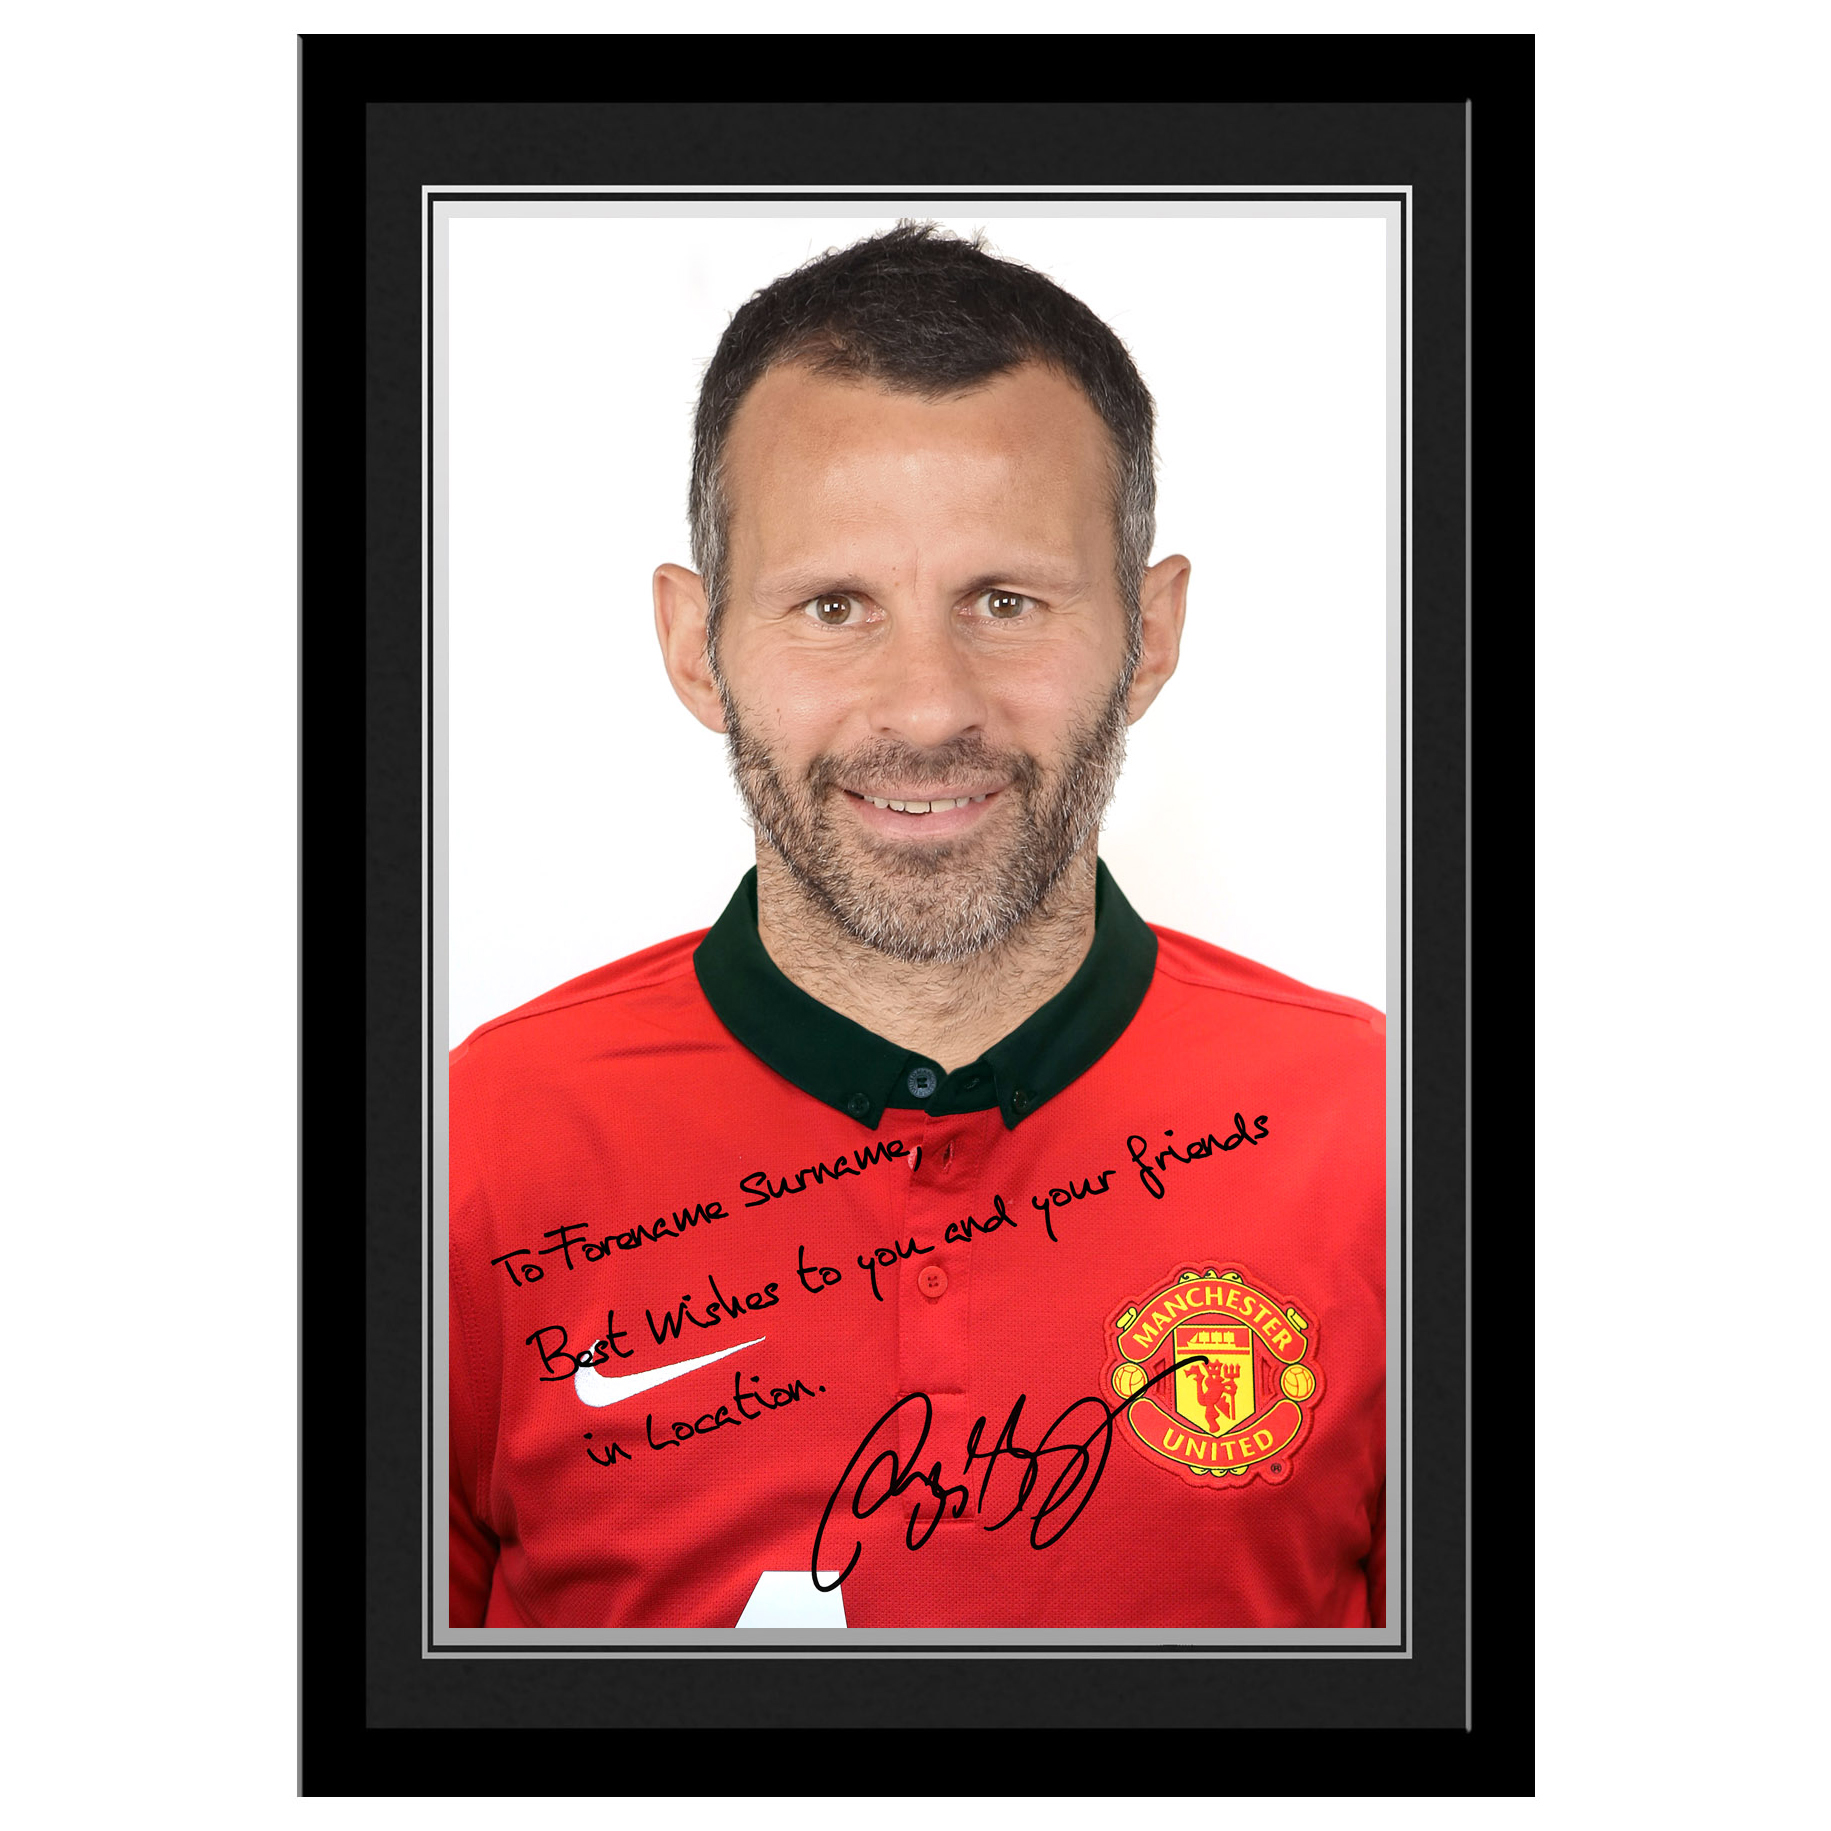 Manchester United Personalised Signature Photo Framed - Giggs